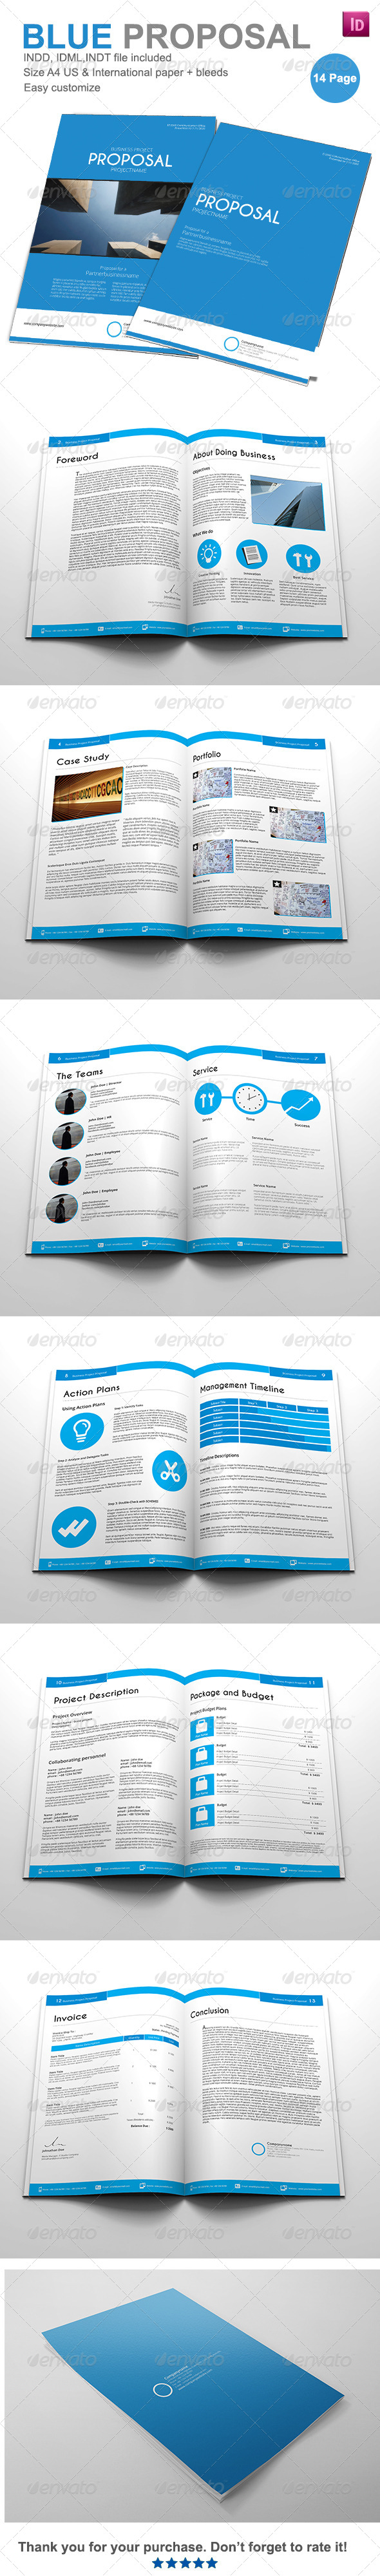 Gstudio Blue Proposal Template - Proposals & Invoices Stationery